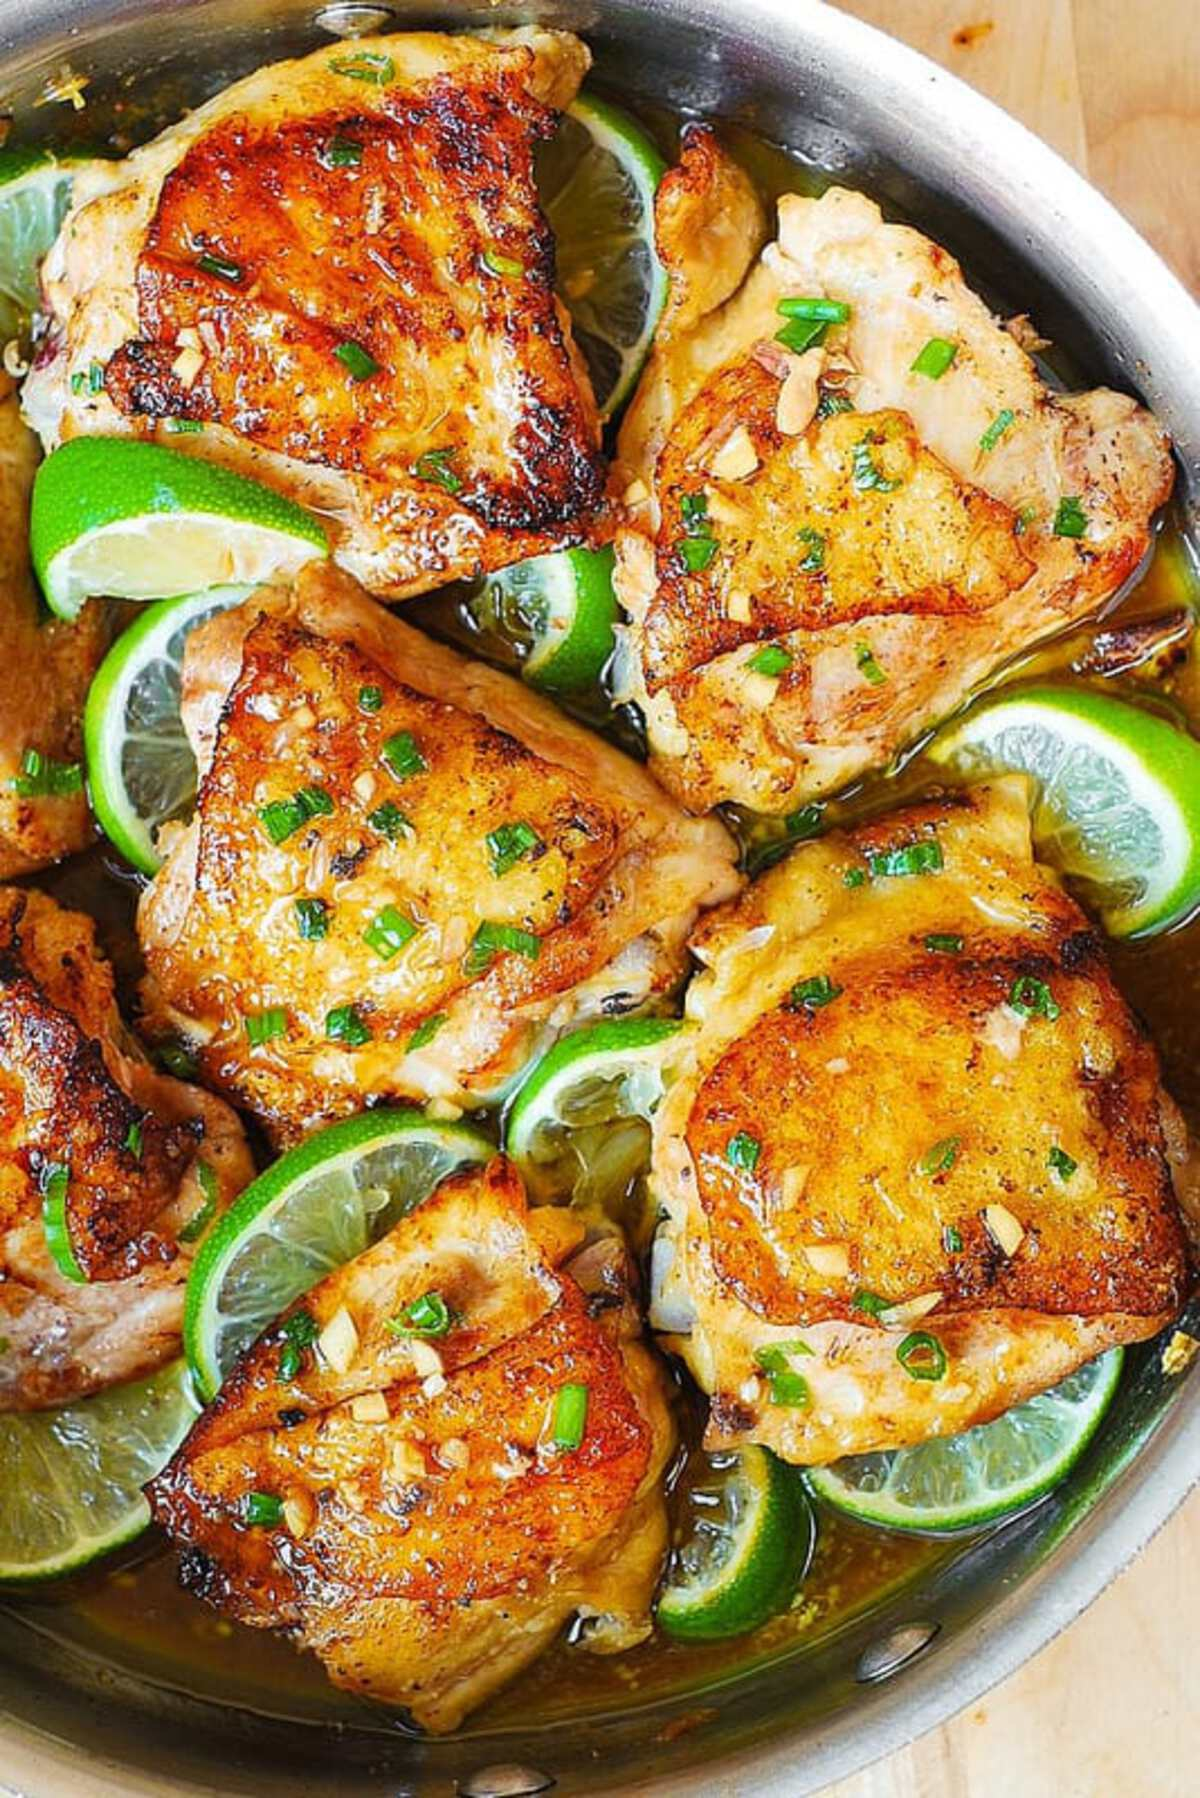 Chicken thighs with lime wedges in skillet